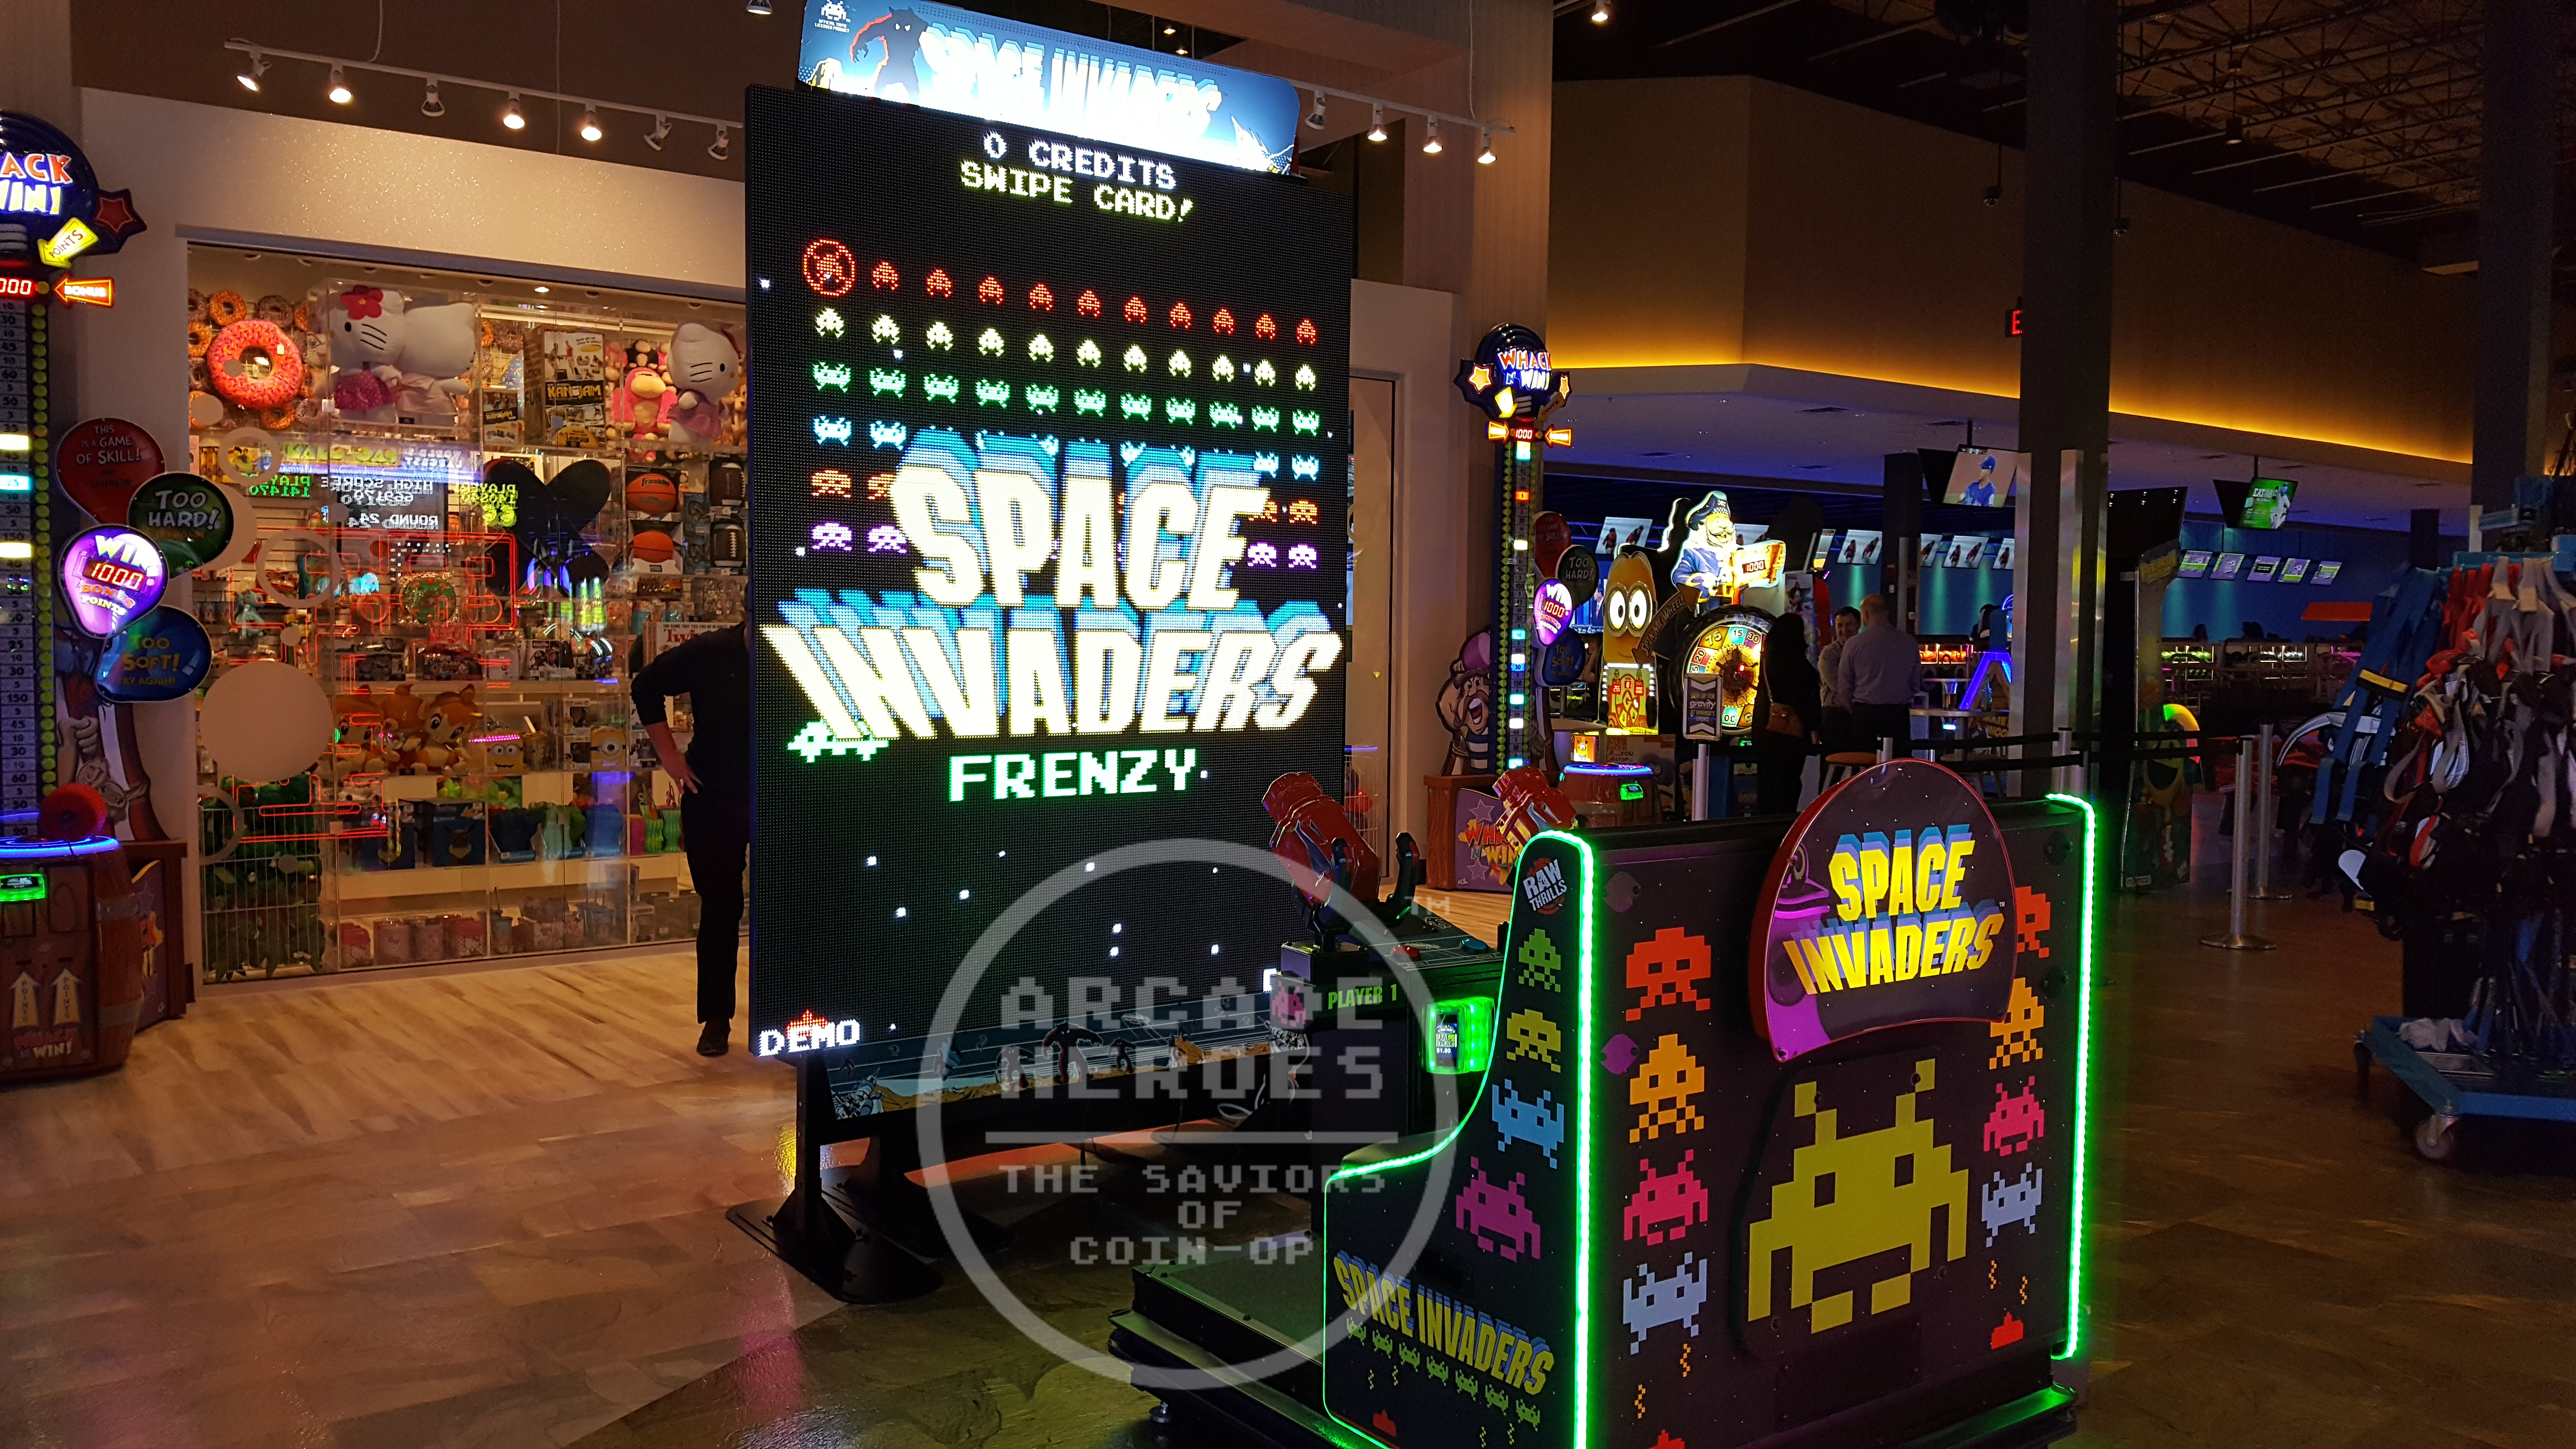 Arcade Heroes New Flyer For Space Invaders Frenzy - Arcade ...